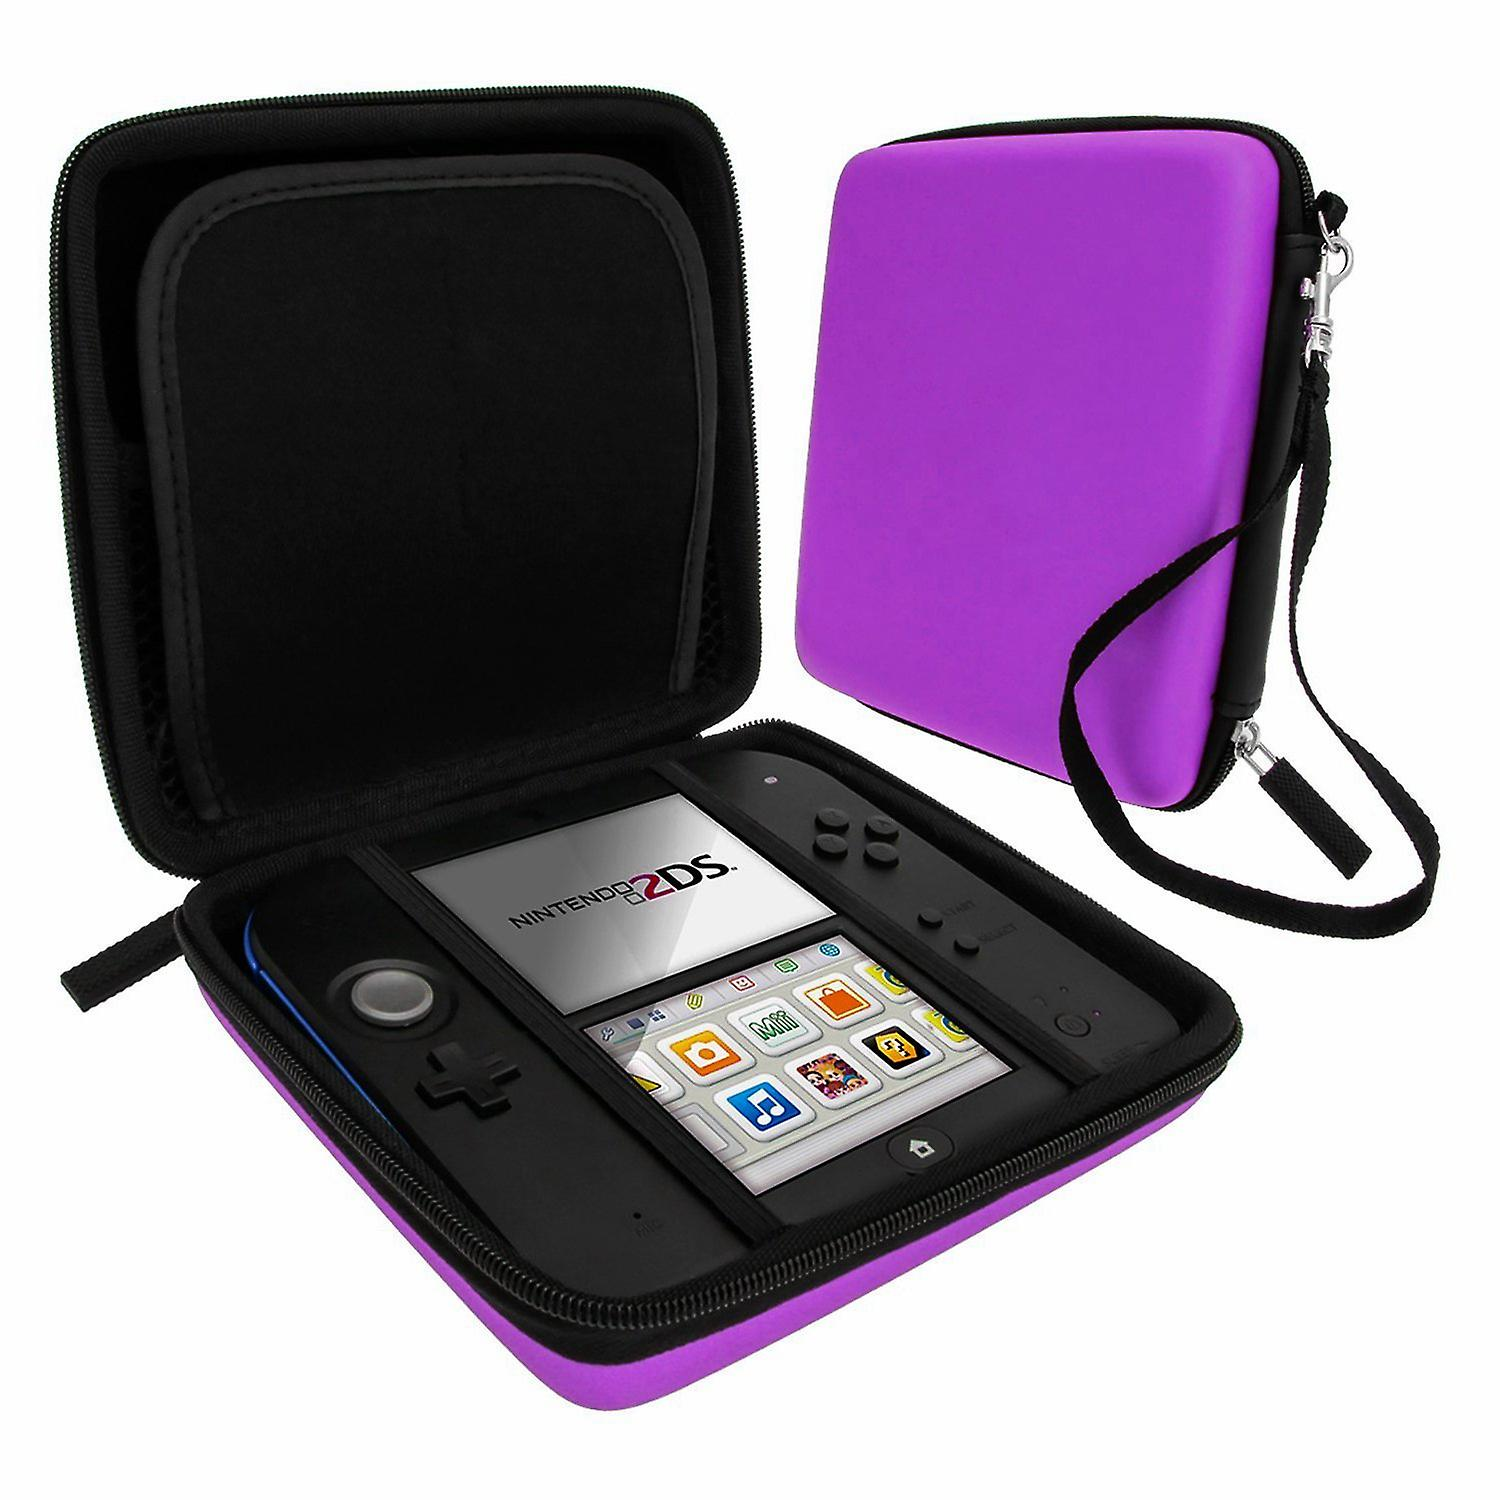 Zedlabz hard protective eva travel carry case for nintendo 2ds with built in game storage - purple